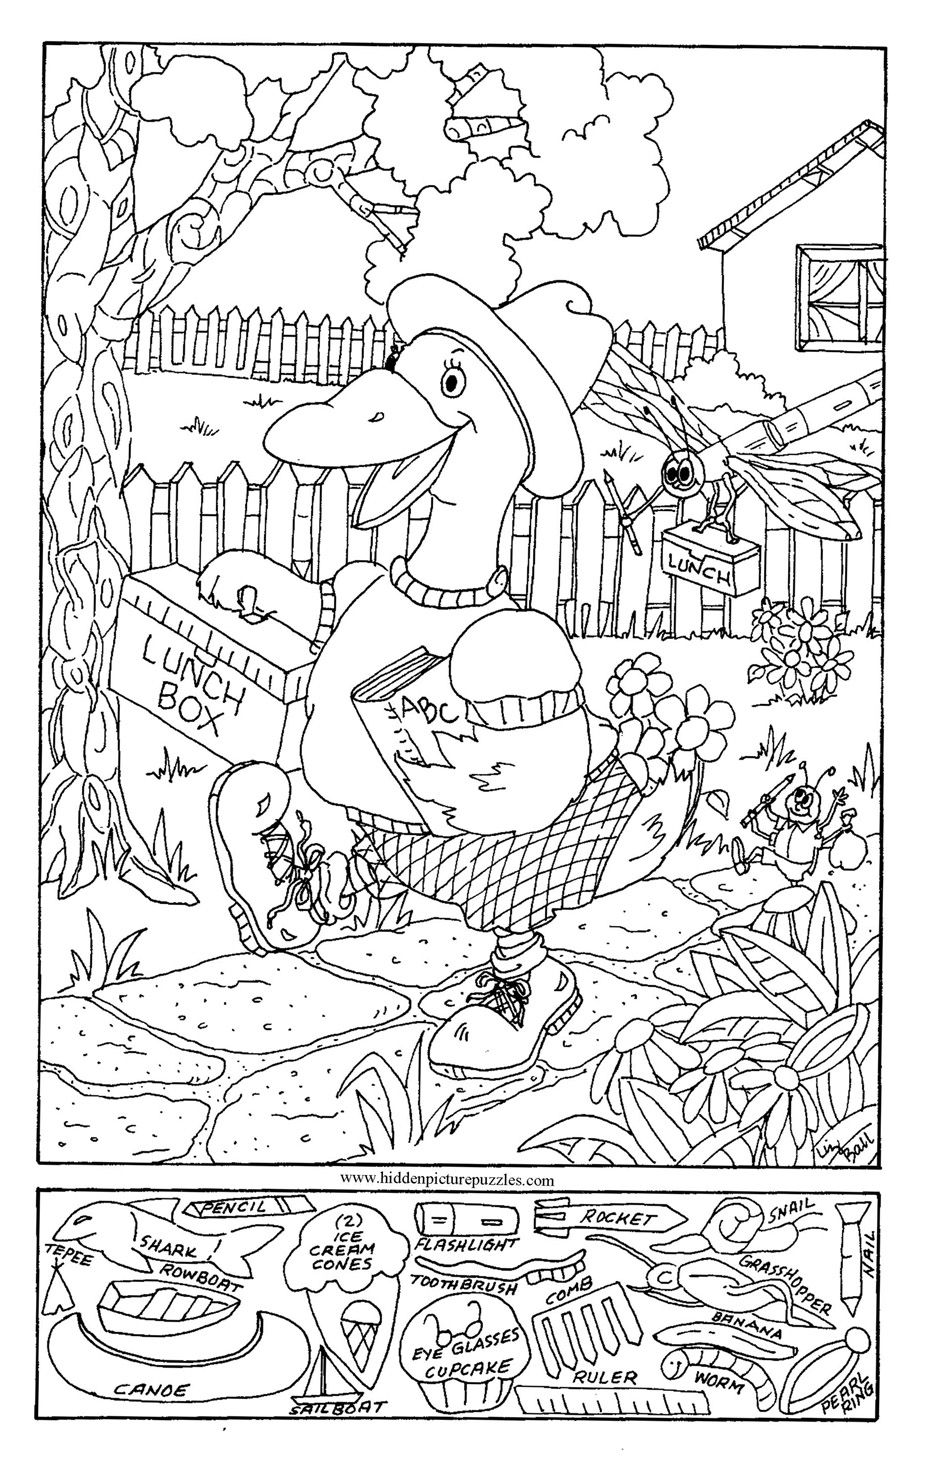 Summer coloring pages for middle school - A Collection Of Great Coloring Pages There Are Lots Of Coloring Sheets All Over The Web Our Mission Is To Organize Them And Have Them Ranked By The